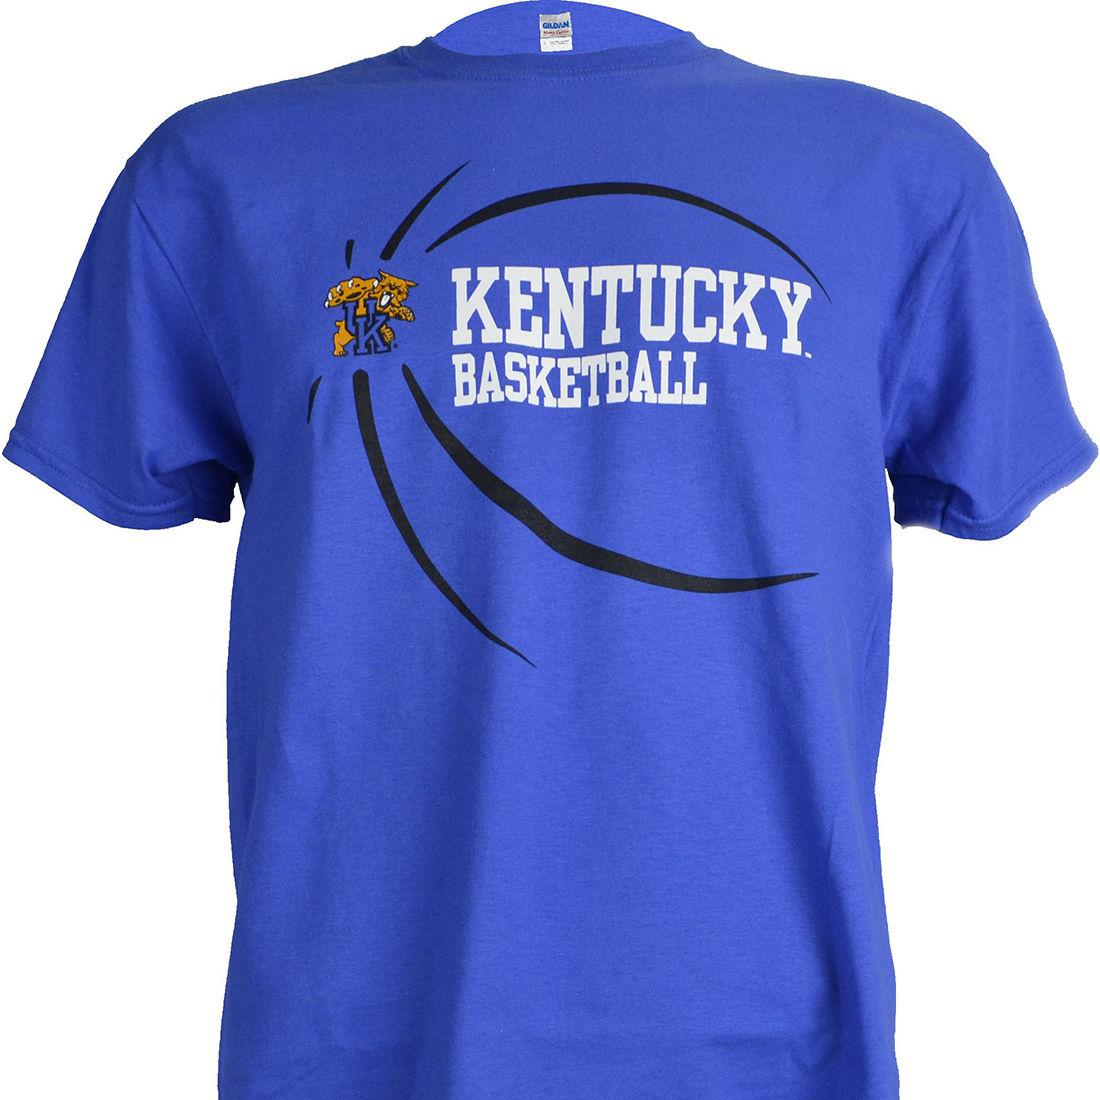 University Of Kentucky UK Ball On Blue Shirt UK Basketball Wildcats Apparel  Humorous T Shirt Cool And Funny T Shirts From Xsy18tshirt 5e12f555a